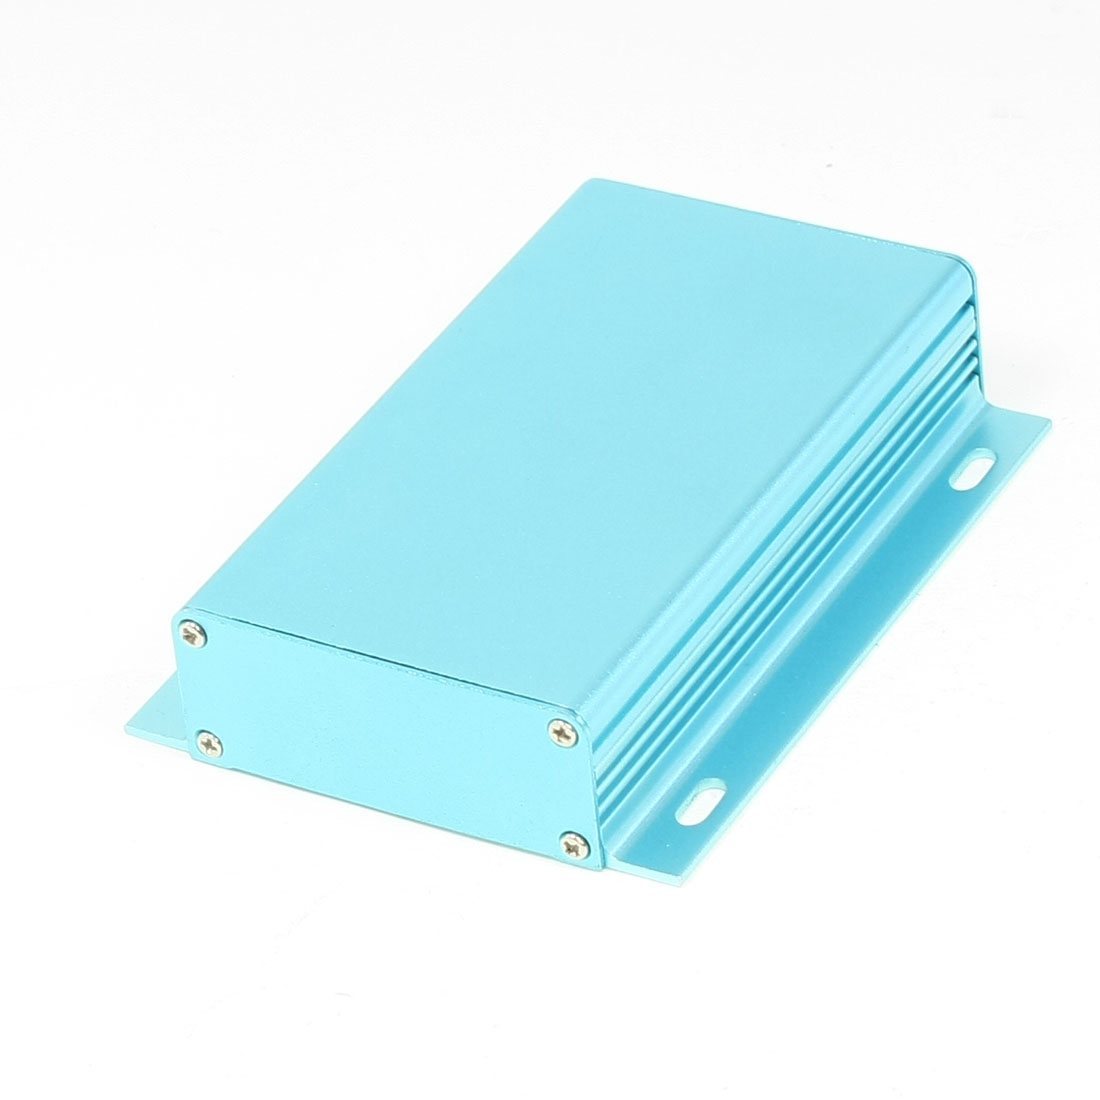 112mm x 62mm x 24mm Aluminum Enclosure Case DIY Junction Box Blue